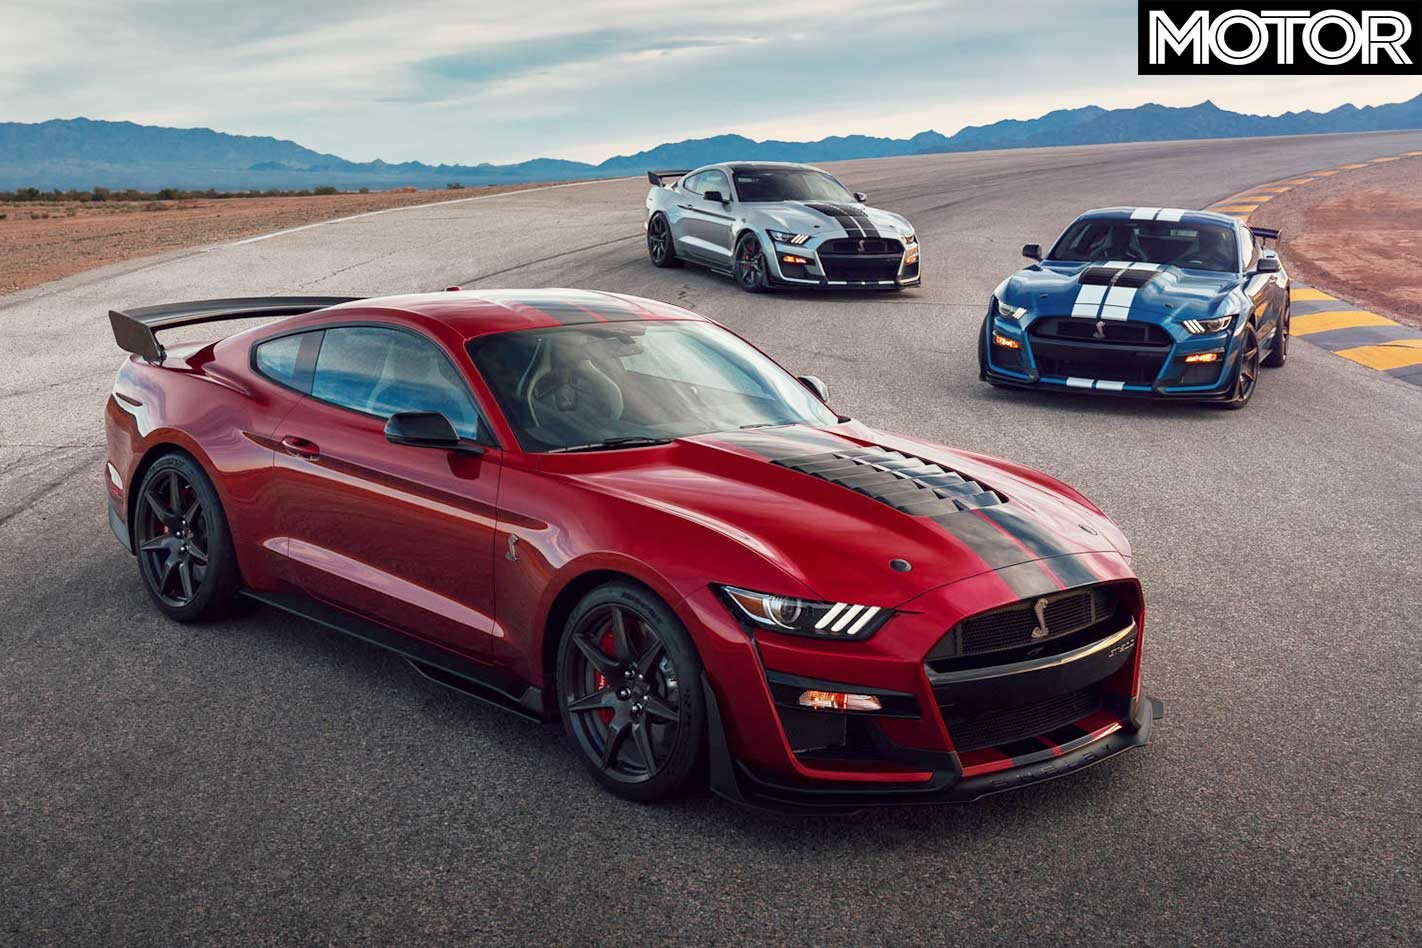 The previous rules made cars like the gt350 and gt500 out of bounds as they were still mustangs which is available in australia